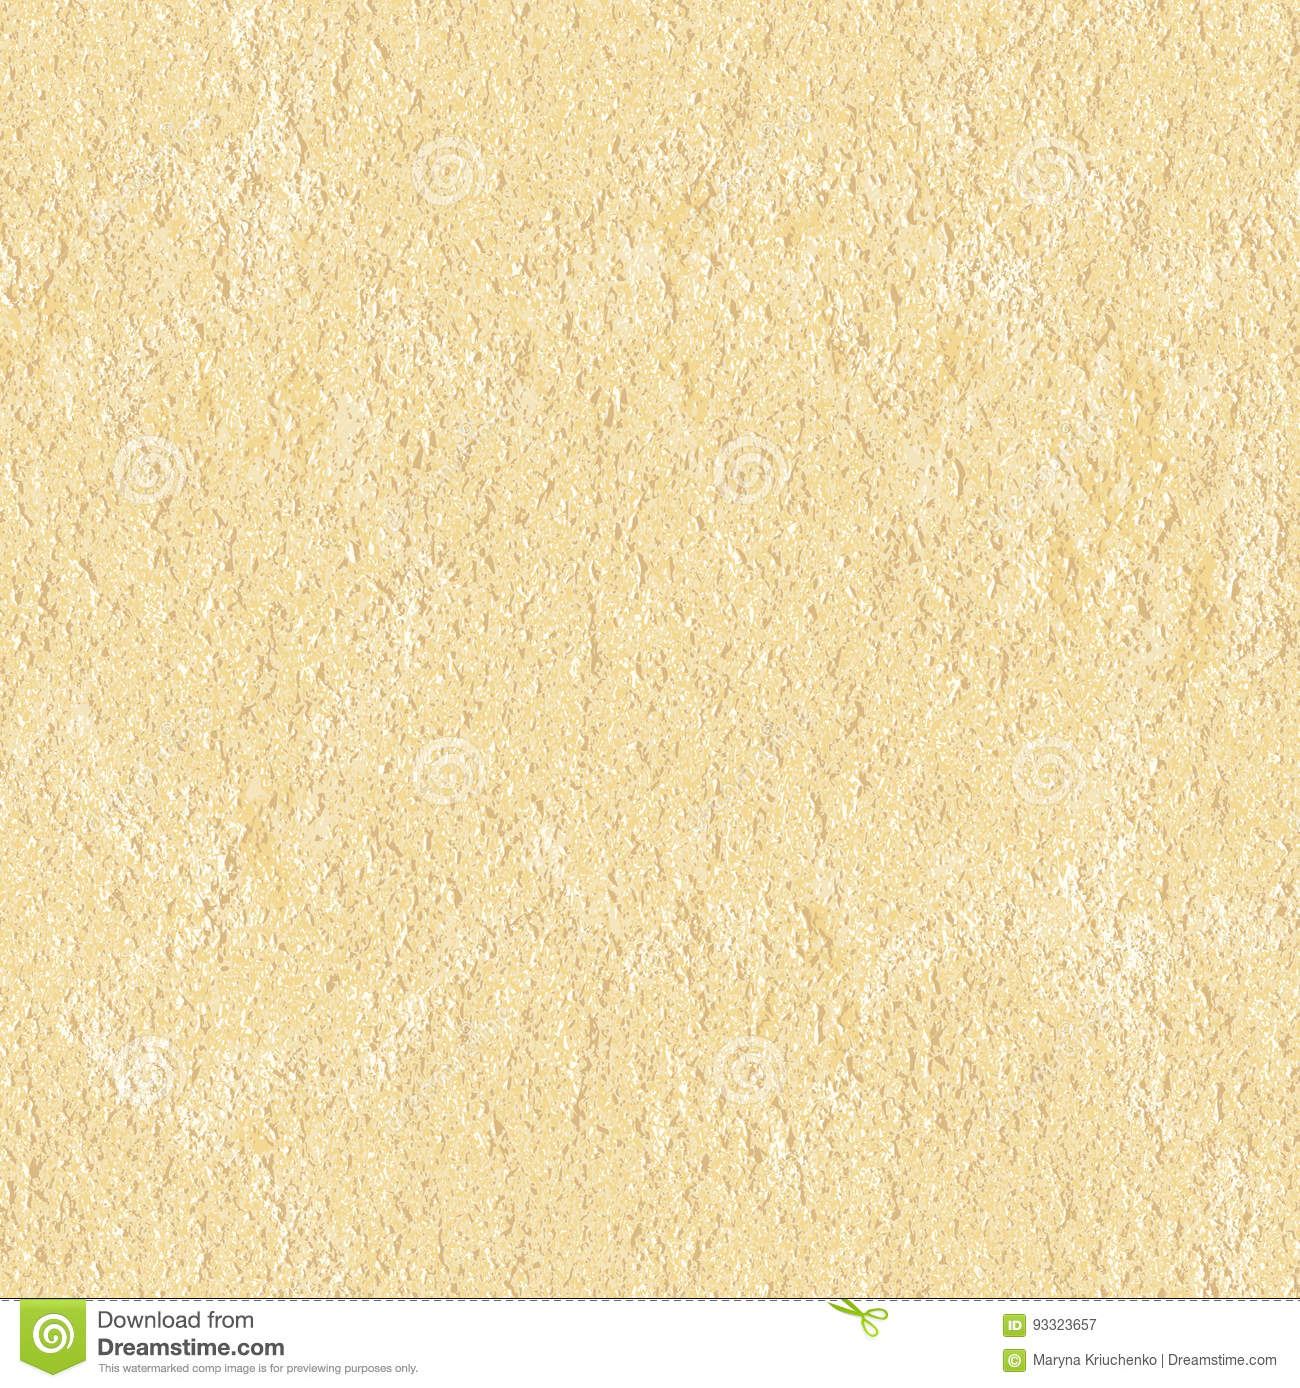 Vector Cement Plaster Wall Background Stock Vector - Illustration of ...